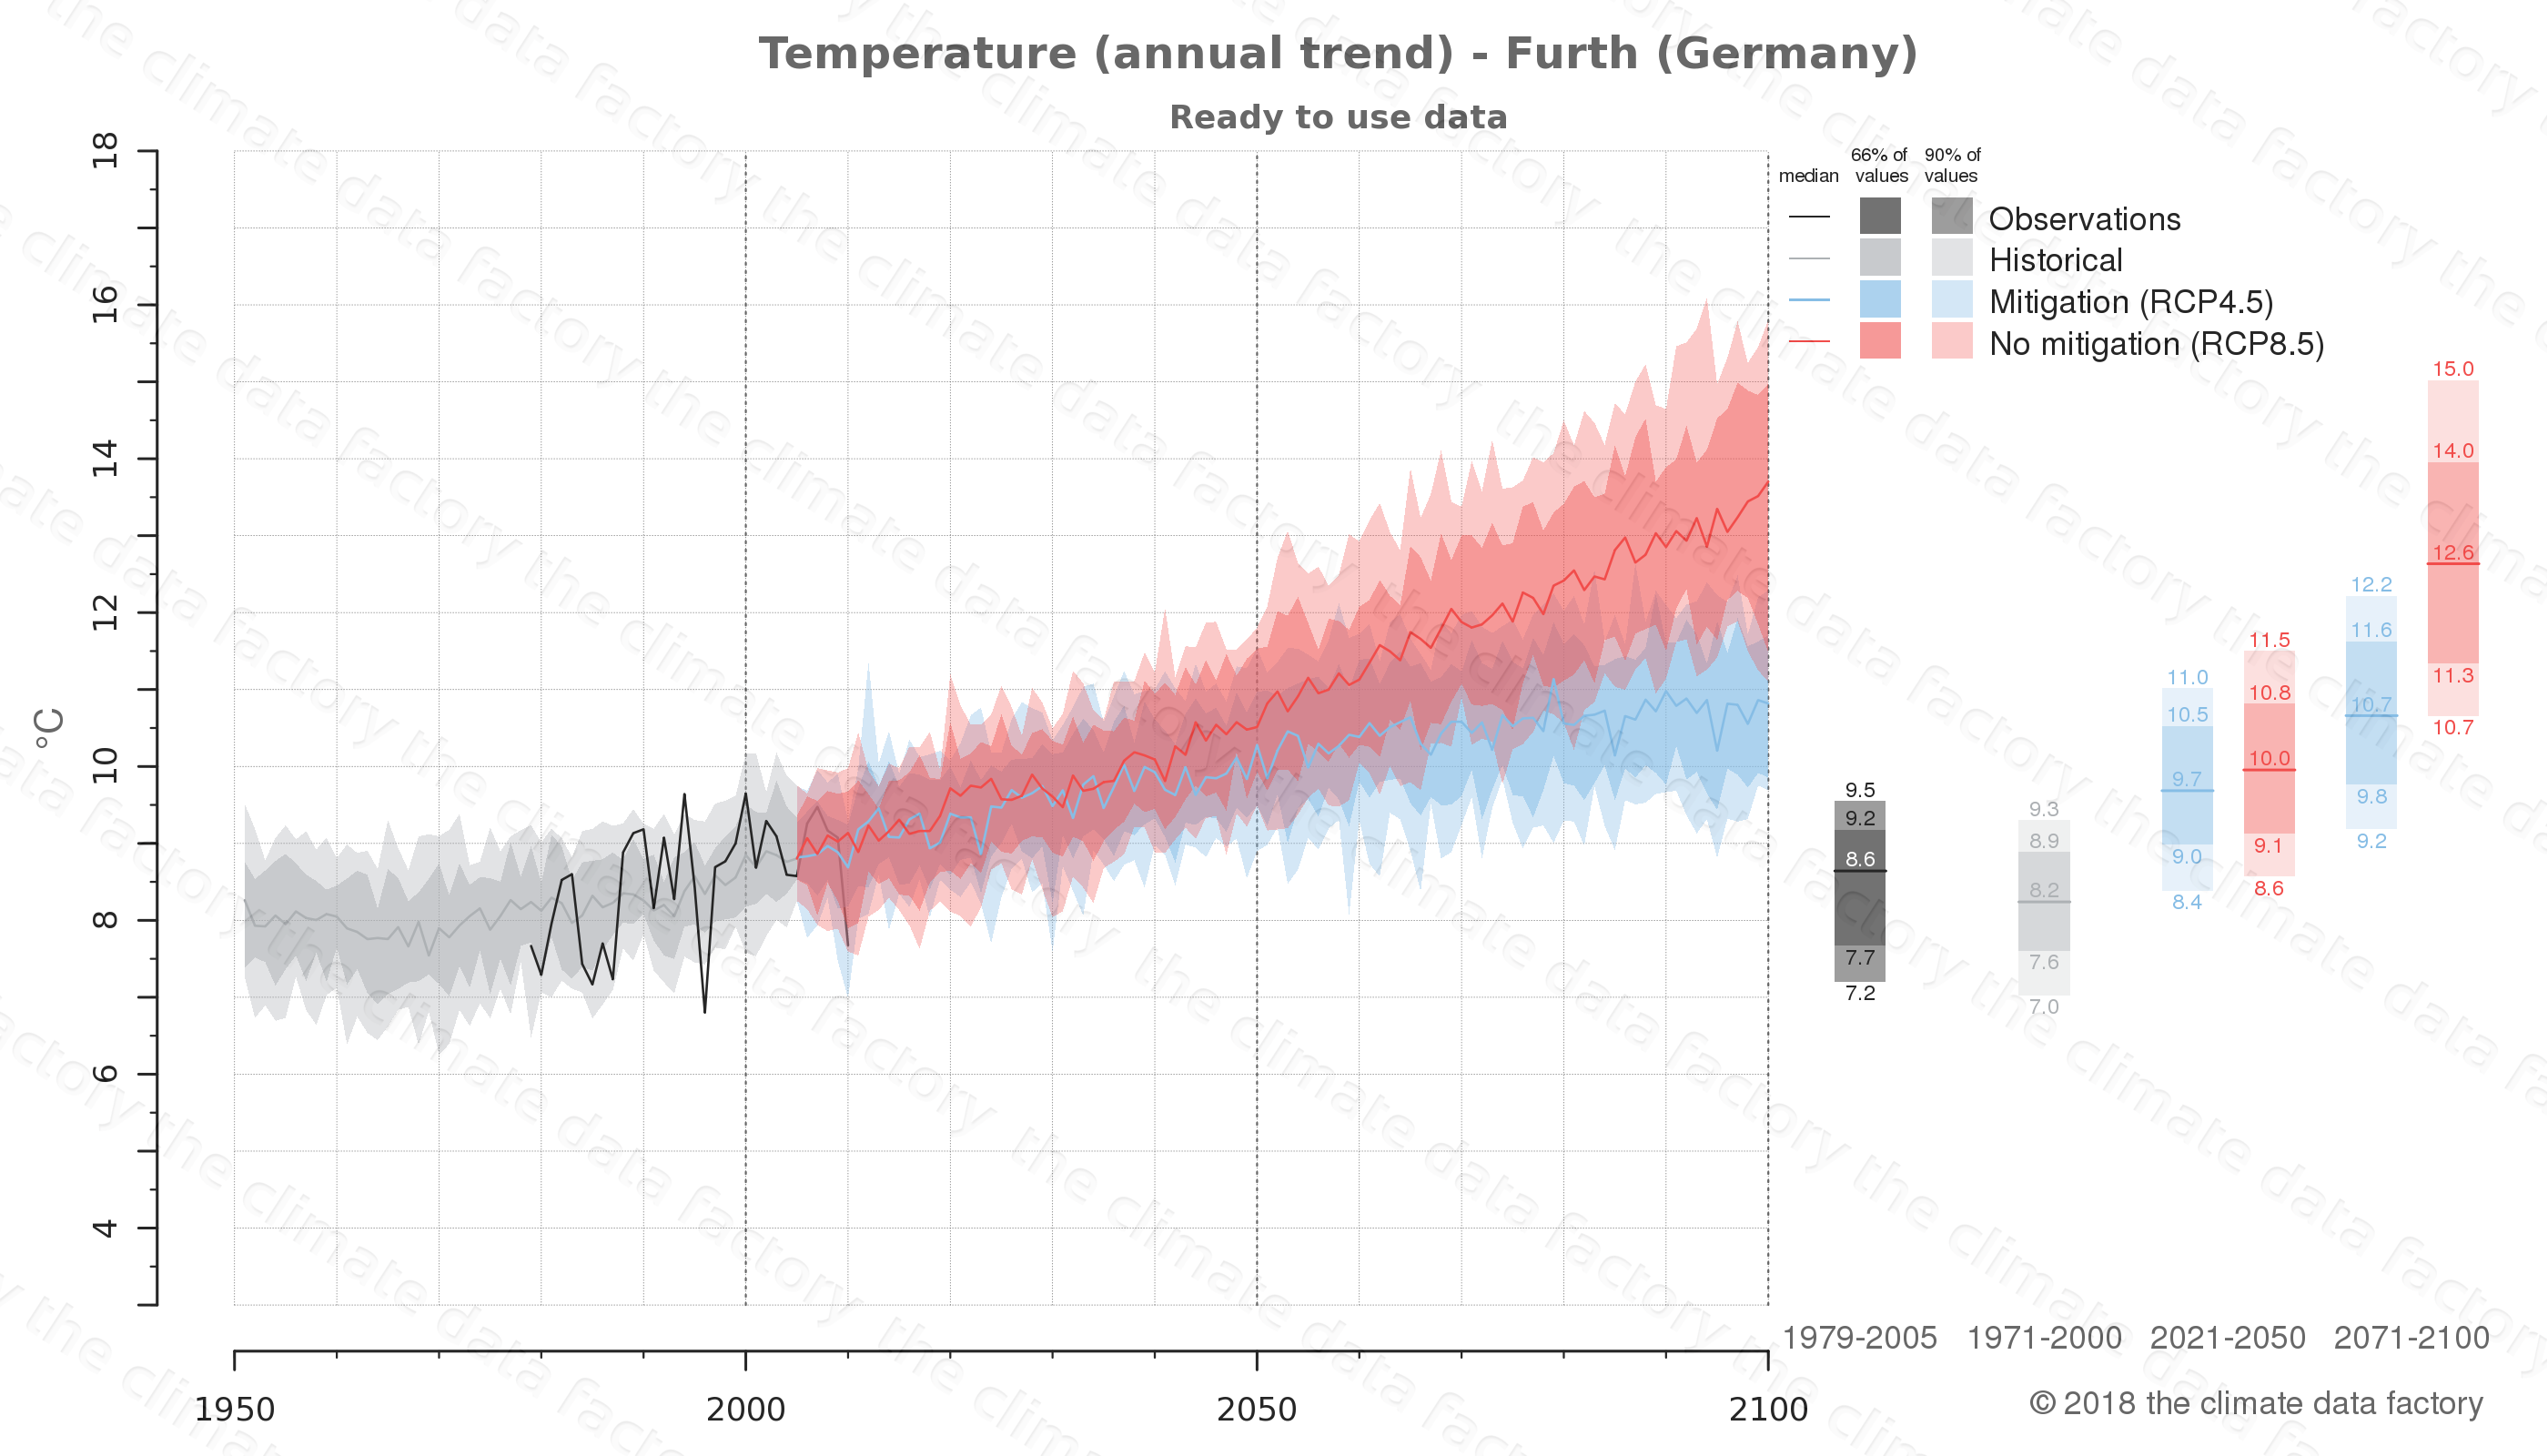 climate change data policy adaptation climate graph city data temperature furth germany